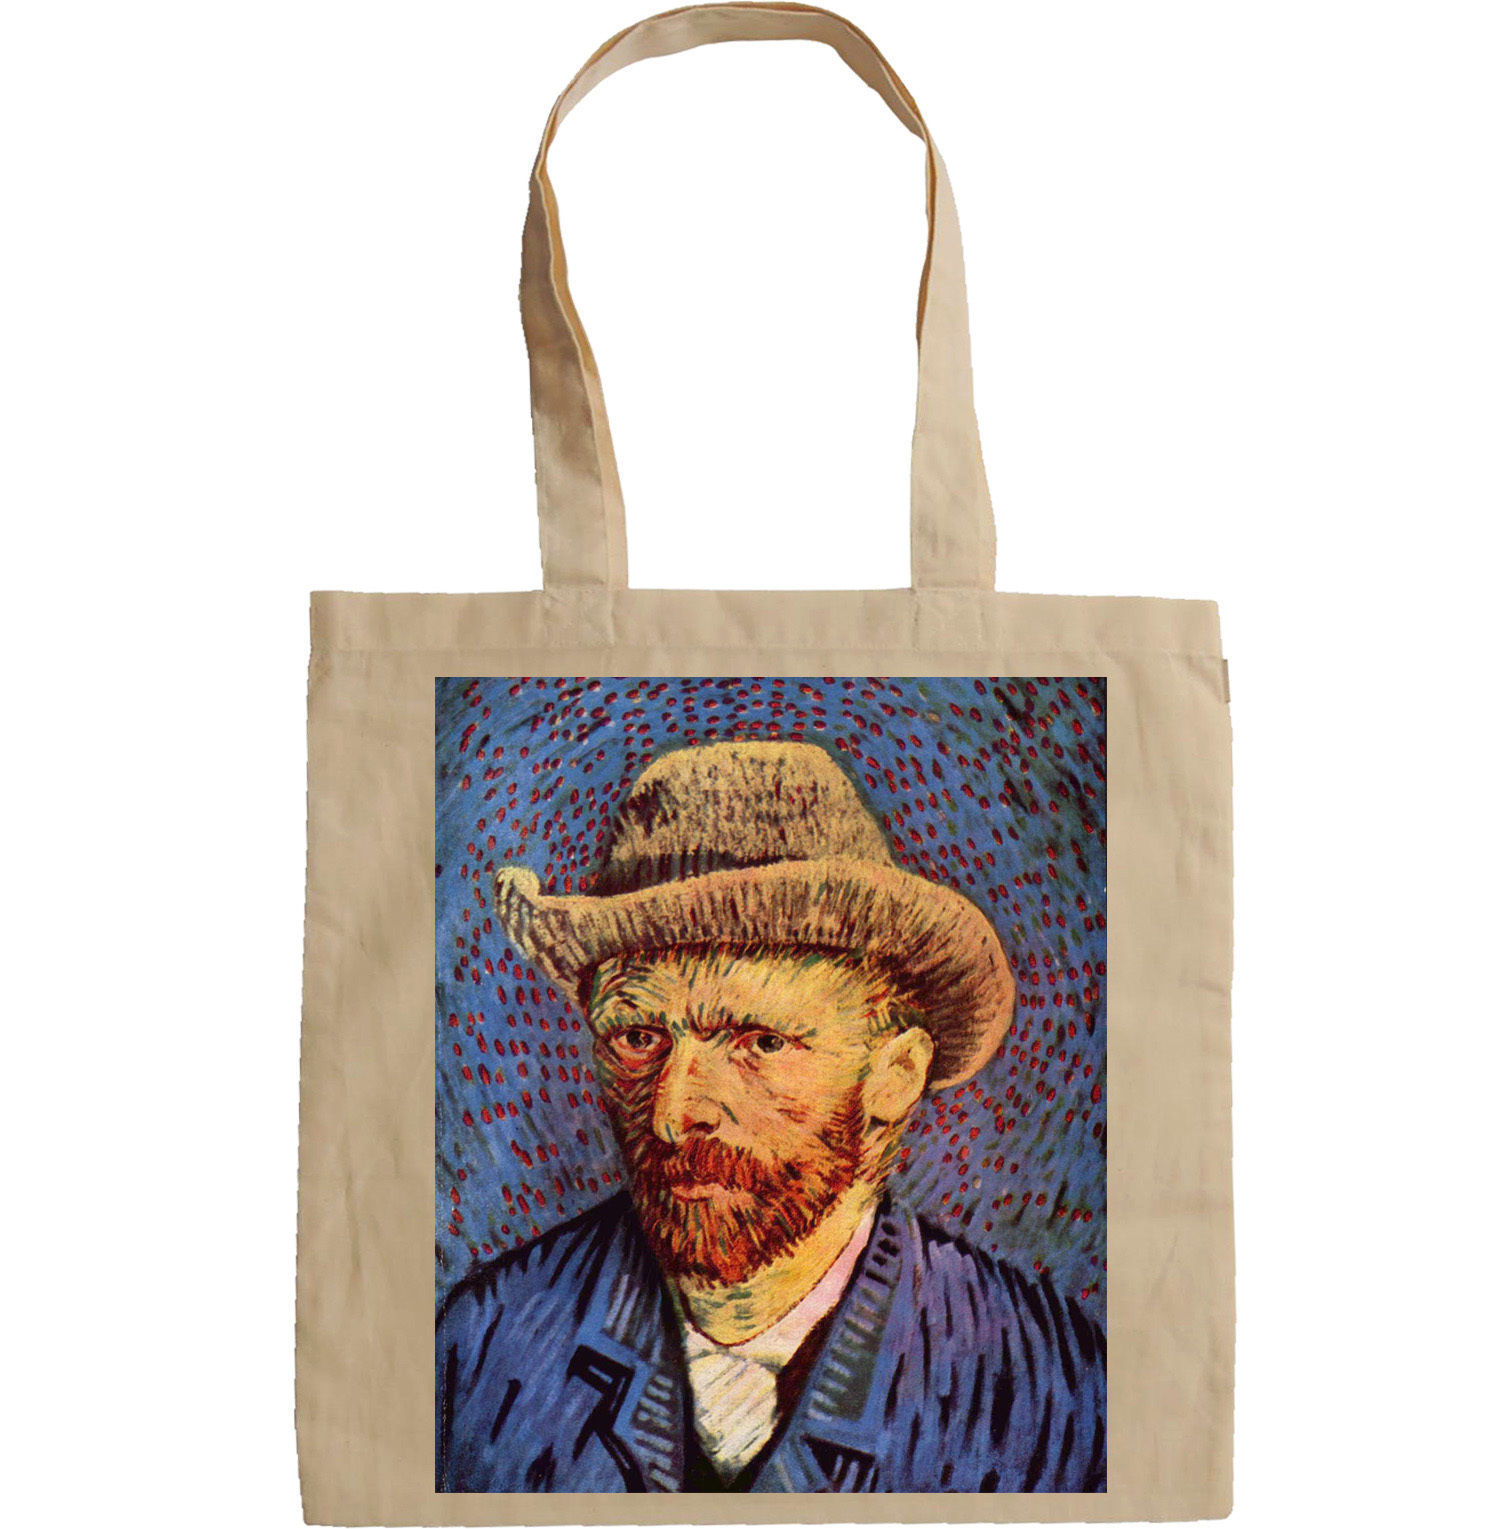 VINCENT VAN GOGH PAINTING 1- NEW AMAZING GRAPHIC HAND BAG/TOTE BAG